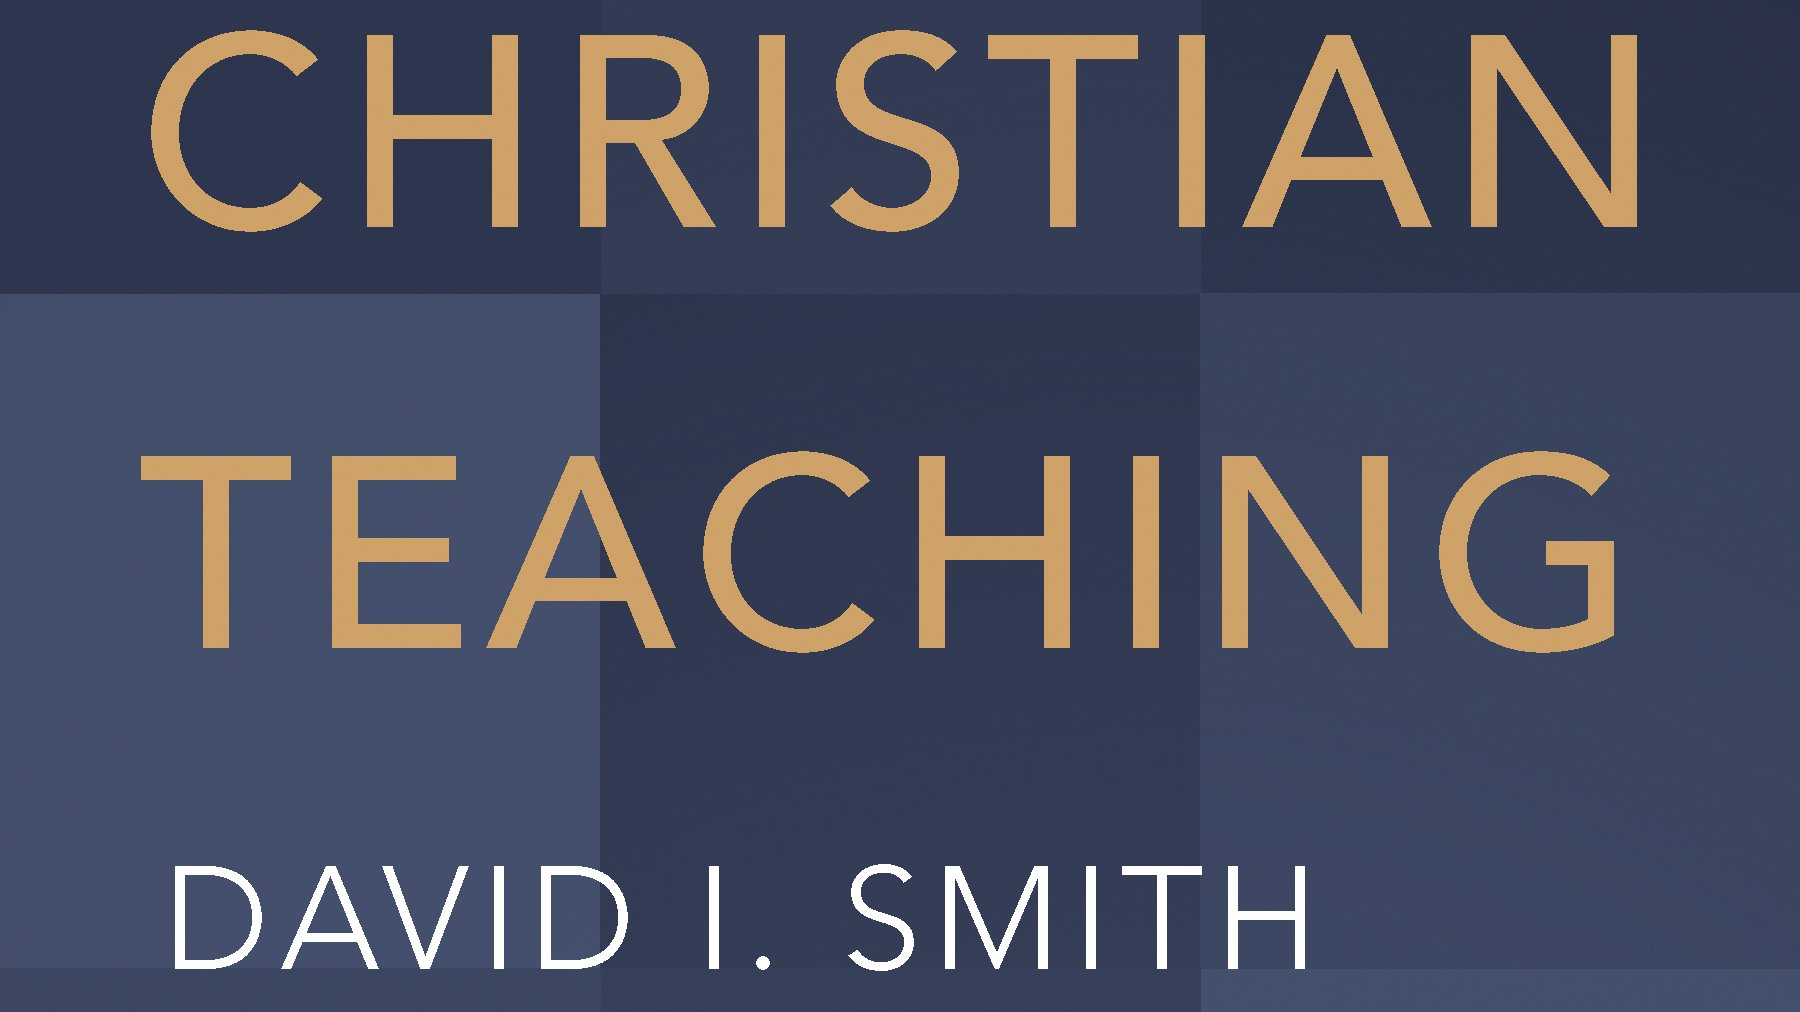 Excerpt: On Christian Teaching